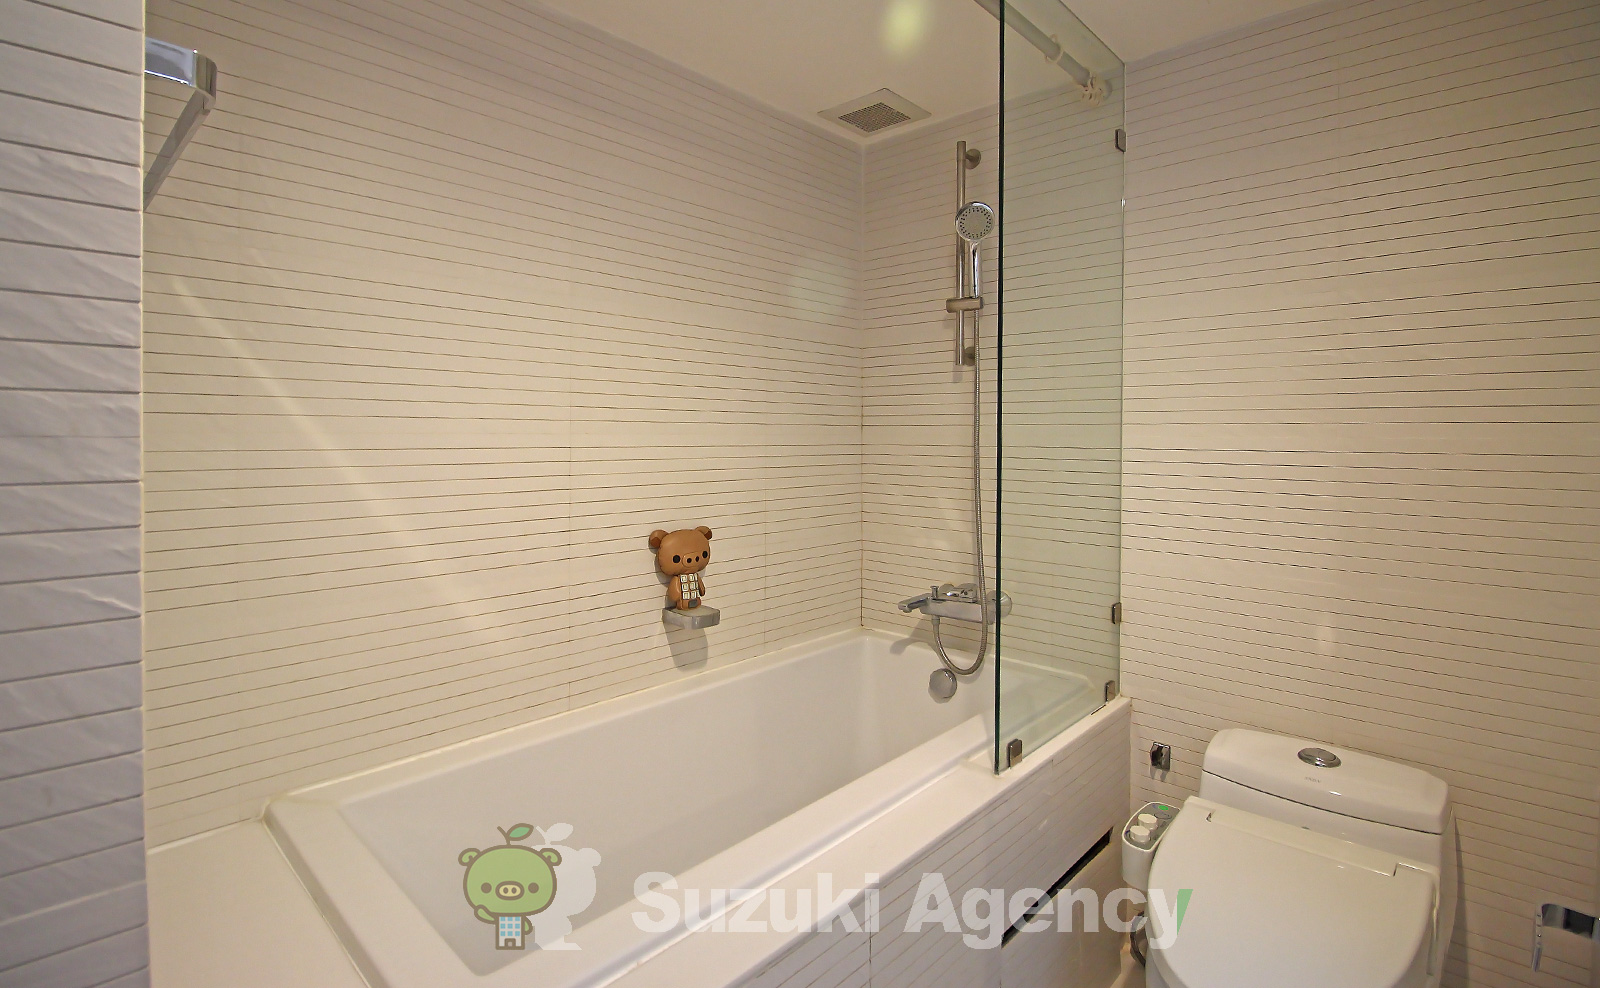 Baan Suanpetch:3Bed Room Photos No.12